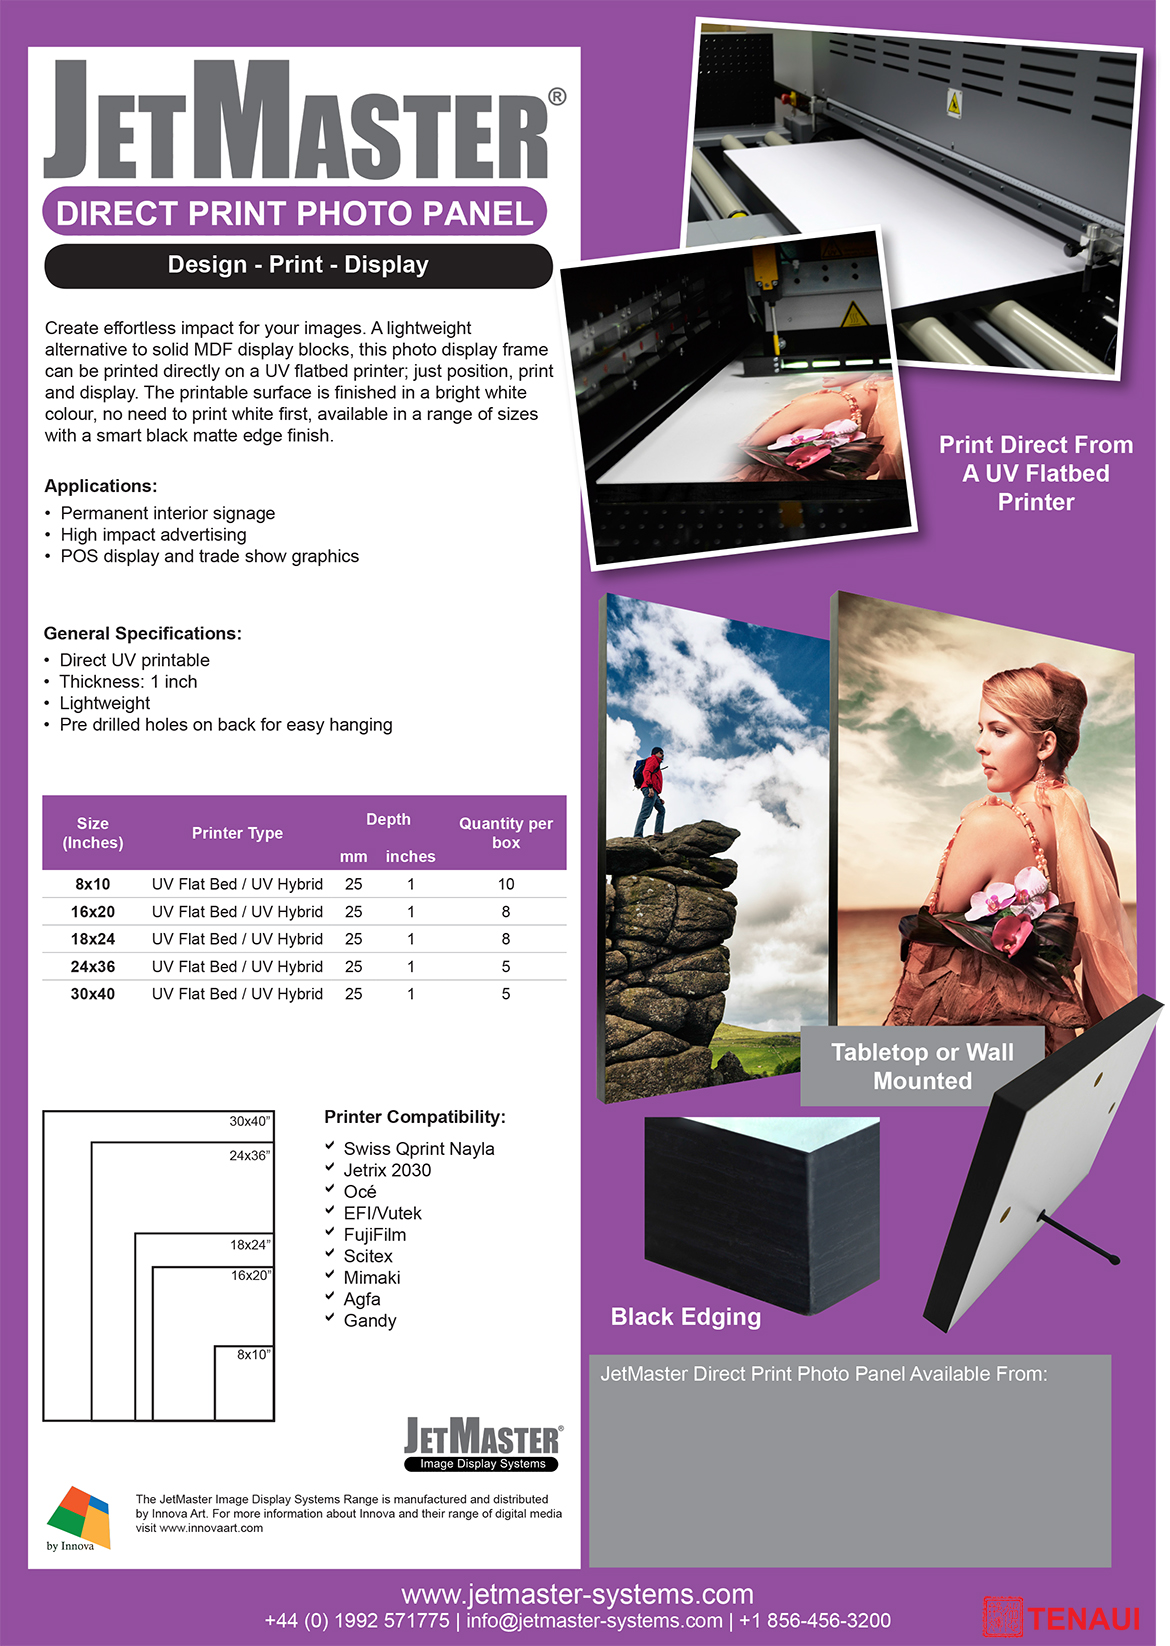 jetmaster-direct-print-photo-panel-tenaui1